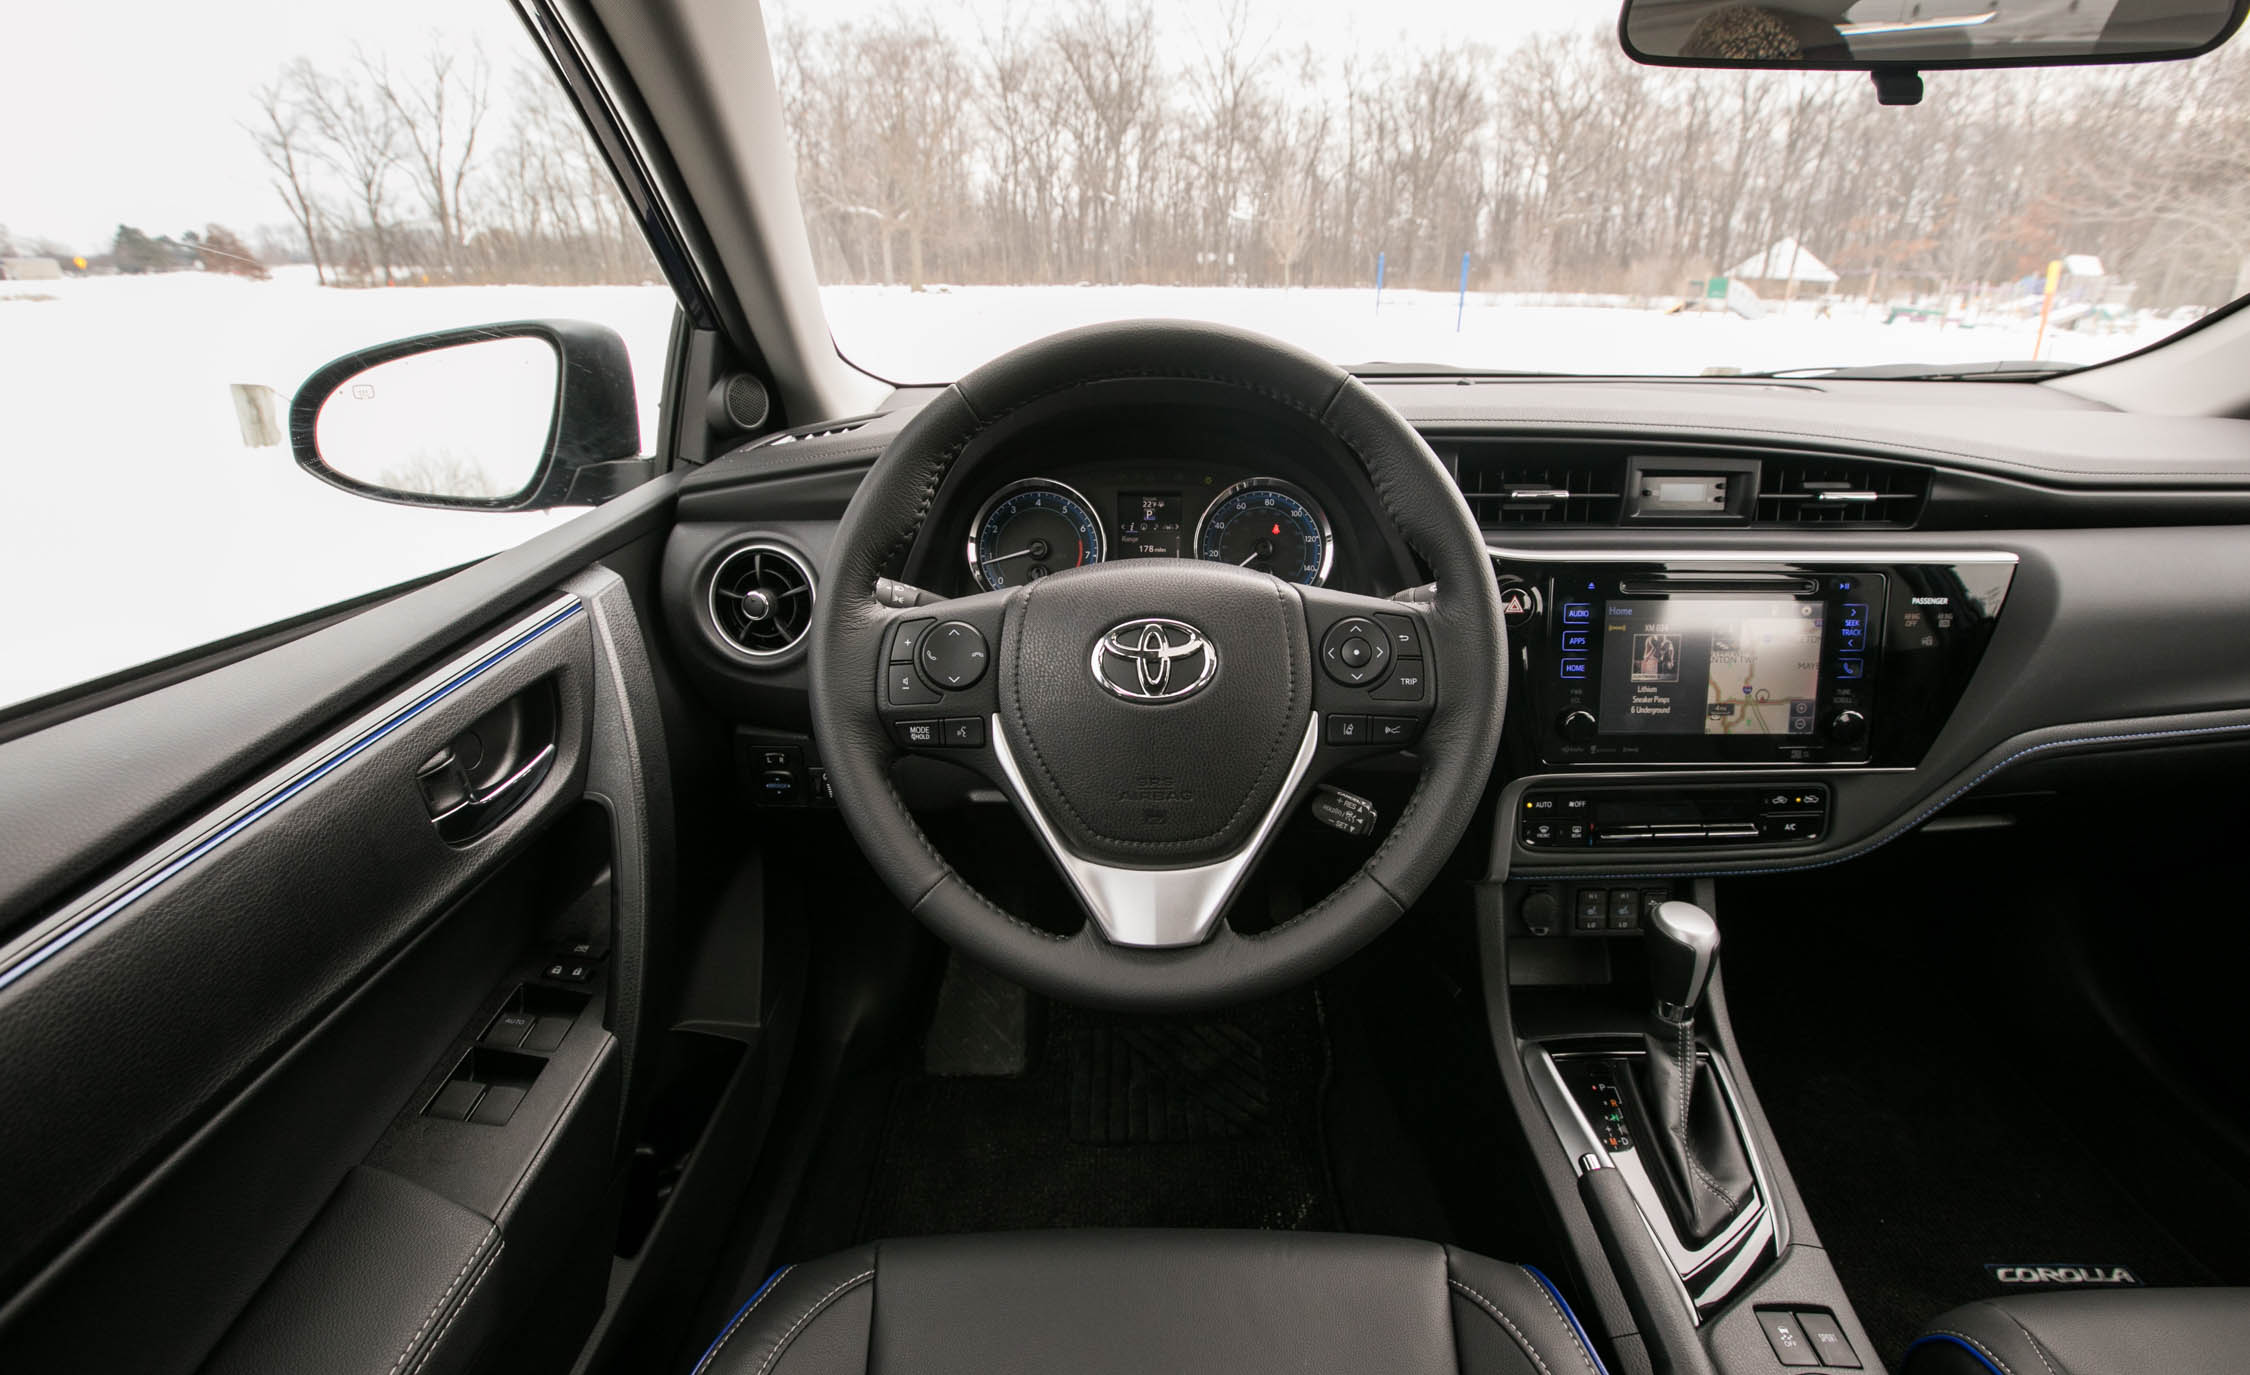 2017 Toyota Corolla XSE Interior Steering And Dash (View 53 of 75)